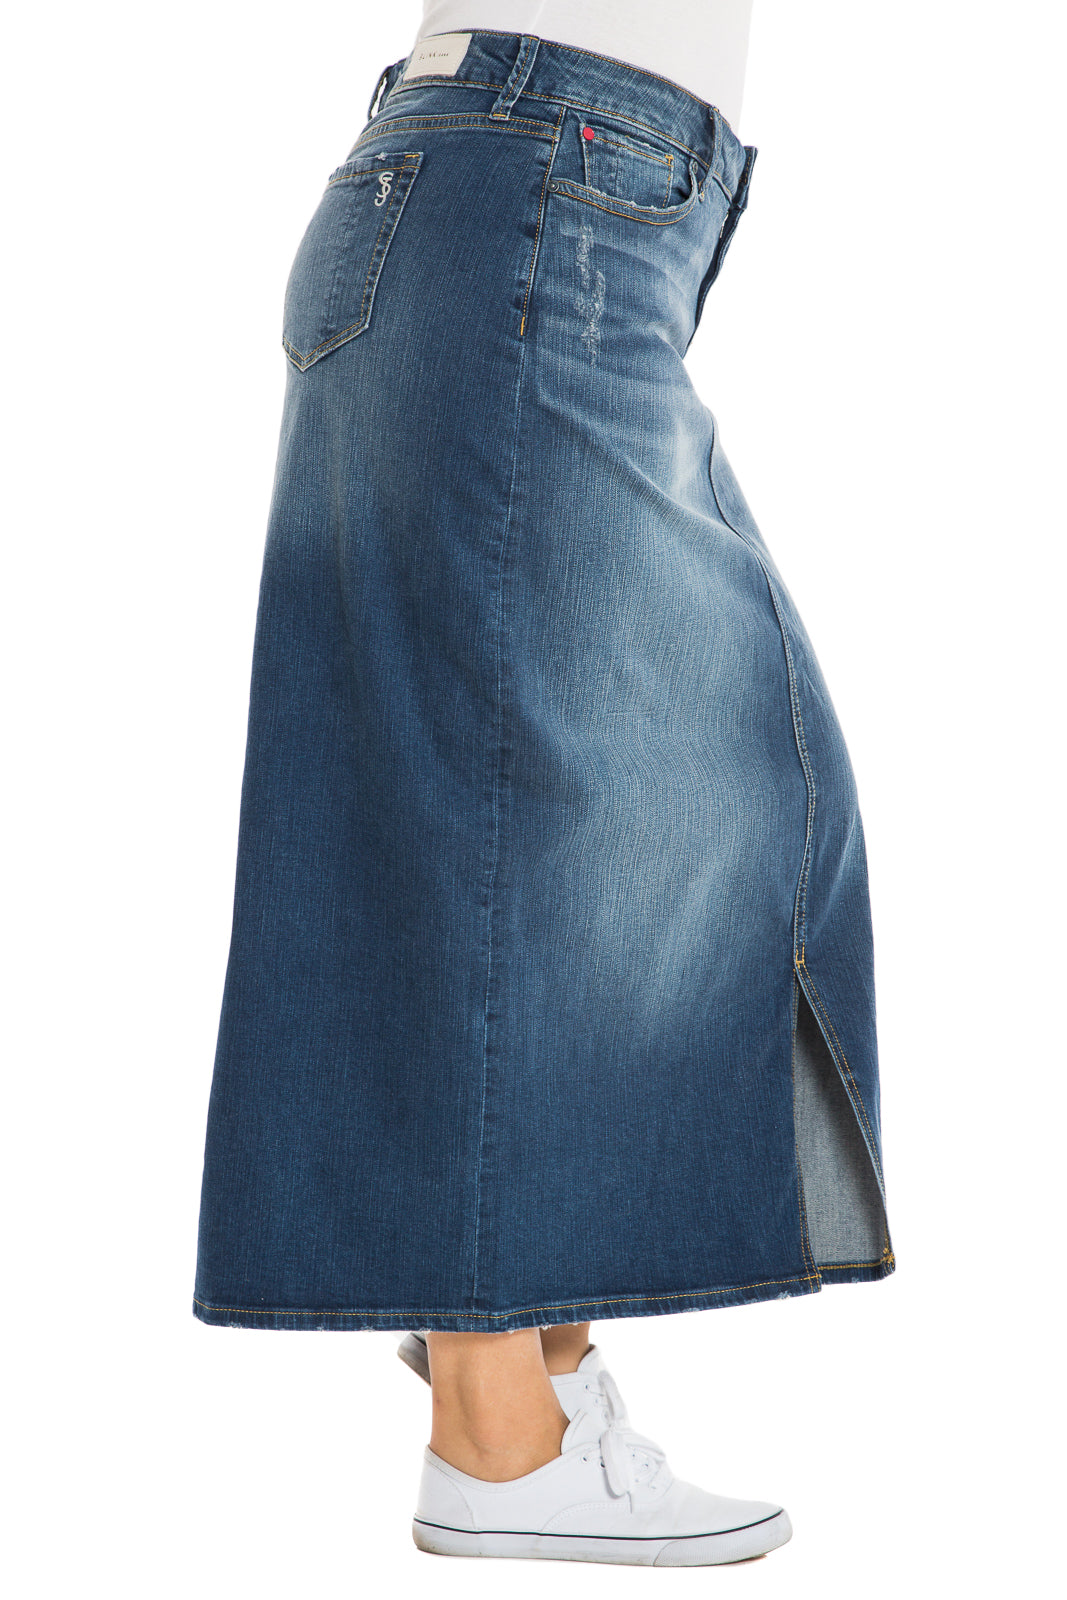 The Long Denim Skirt - RUBY